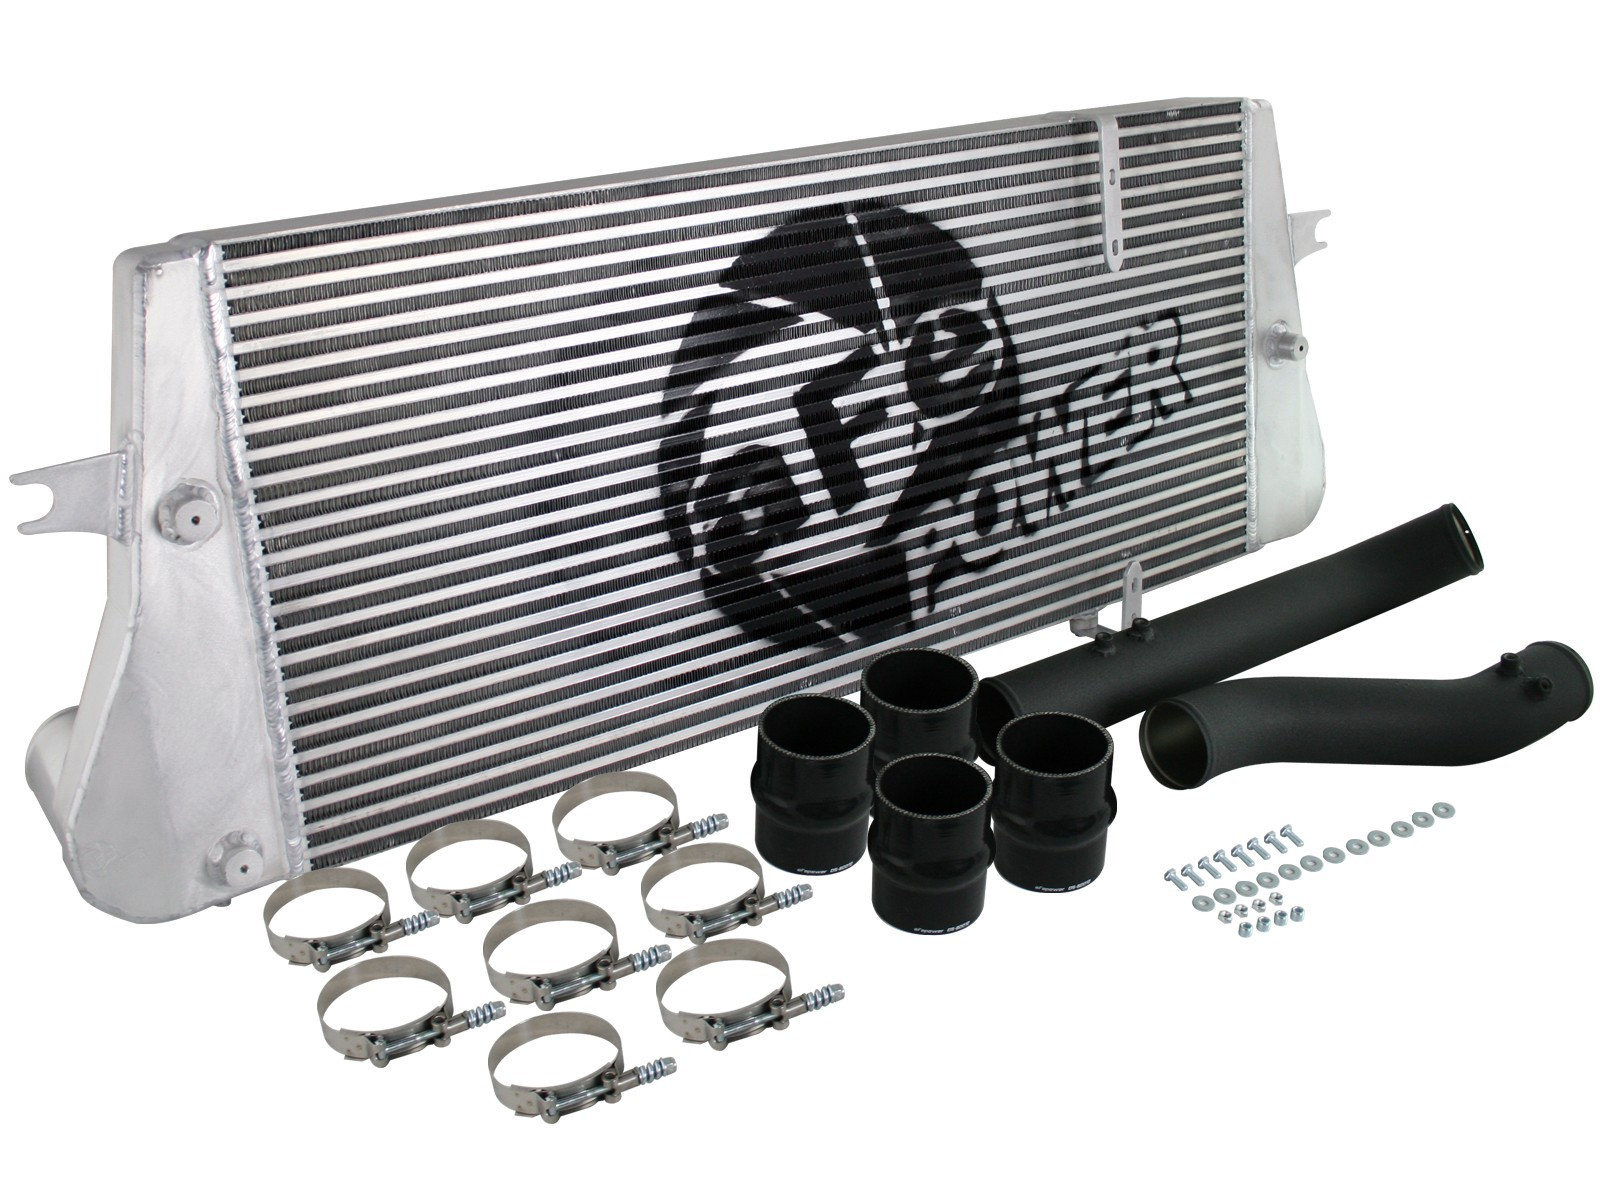 aFe POWER 46-20062 BladeRunner GT Series Intercooler with Tubes